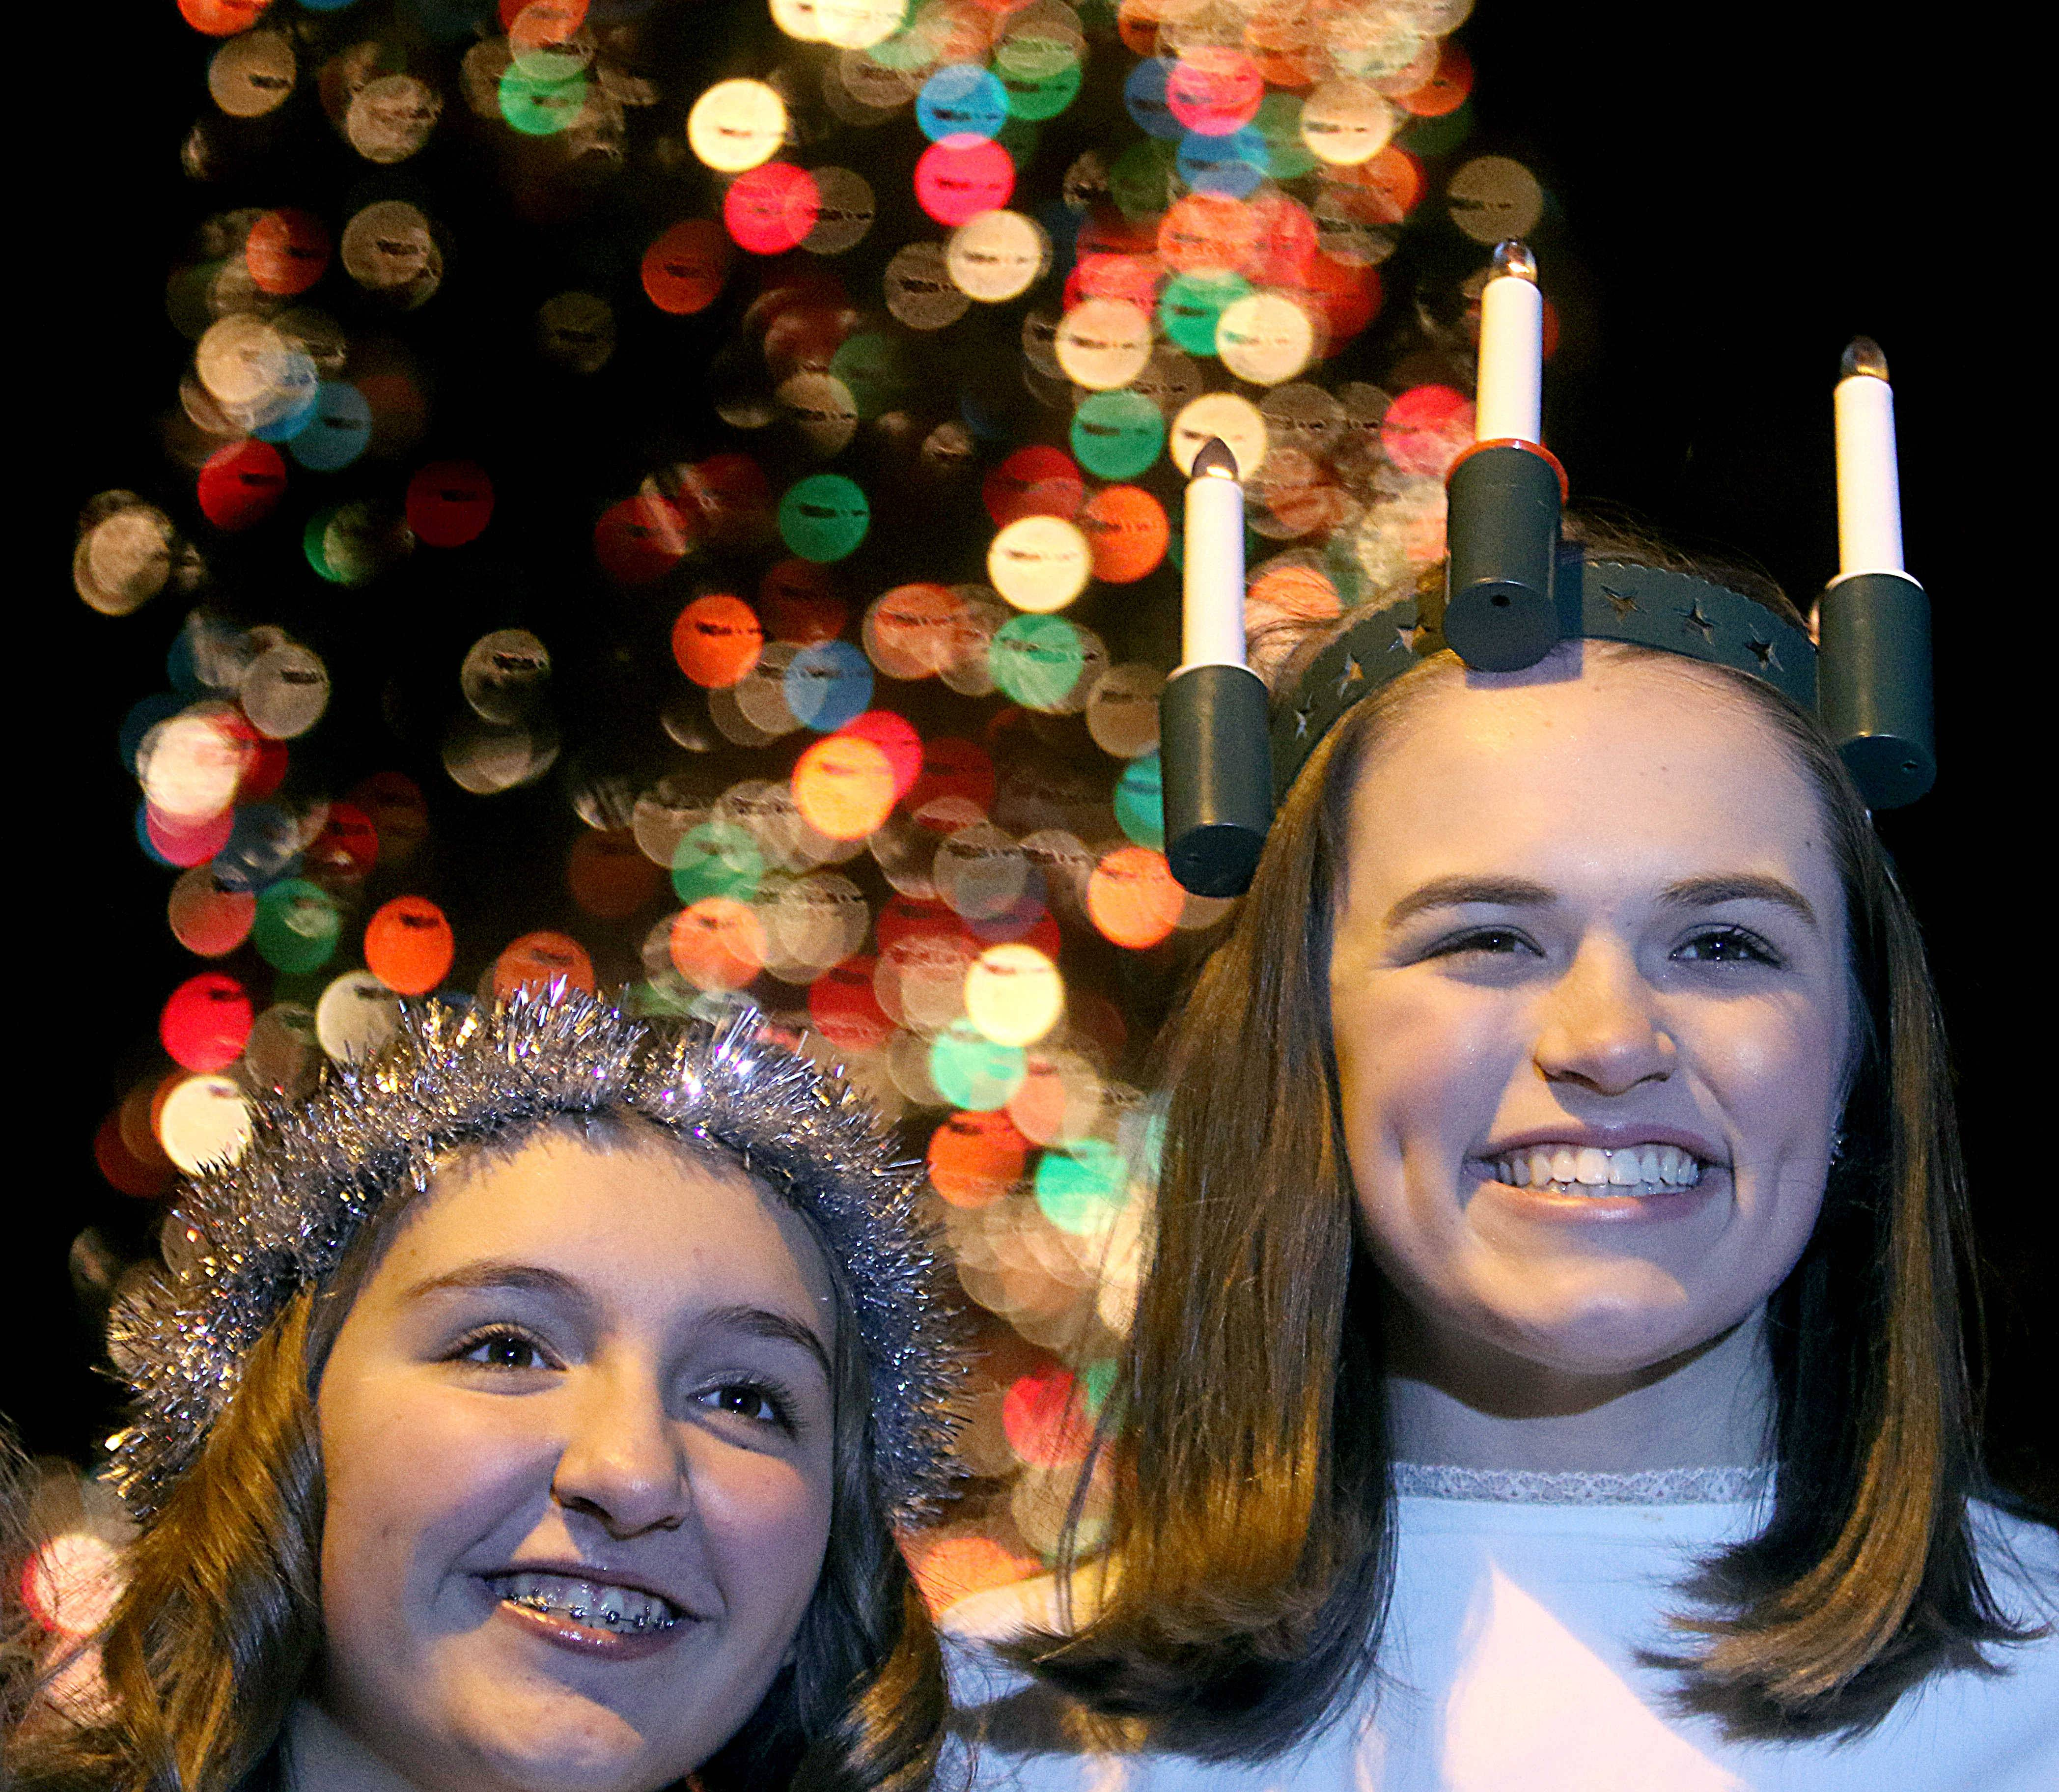 Anna Fintzen, 15, right, of Geneva plays the part of Santa Lucia as Lucy Bridges, 13, left, plays a Santa Lucia attendant on Friday during the Christmas Walk Weekend festivities in downtown Geneva.